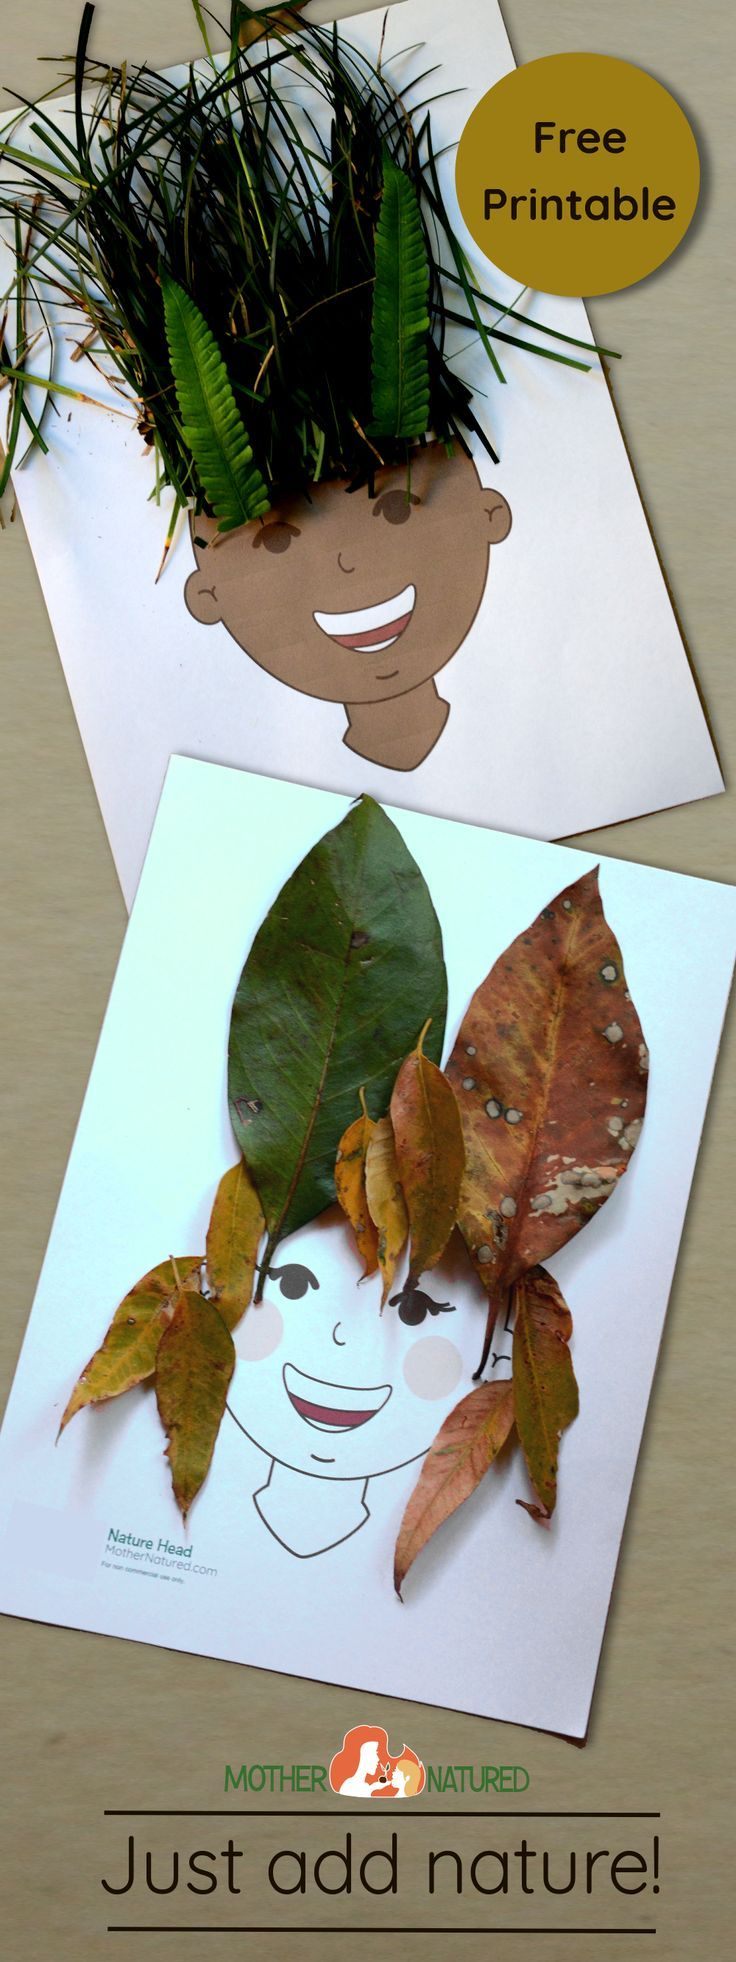 Free printable: Your kids will ADORE this nature head collage #beautifulnature